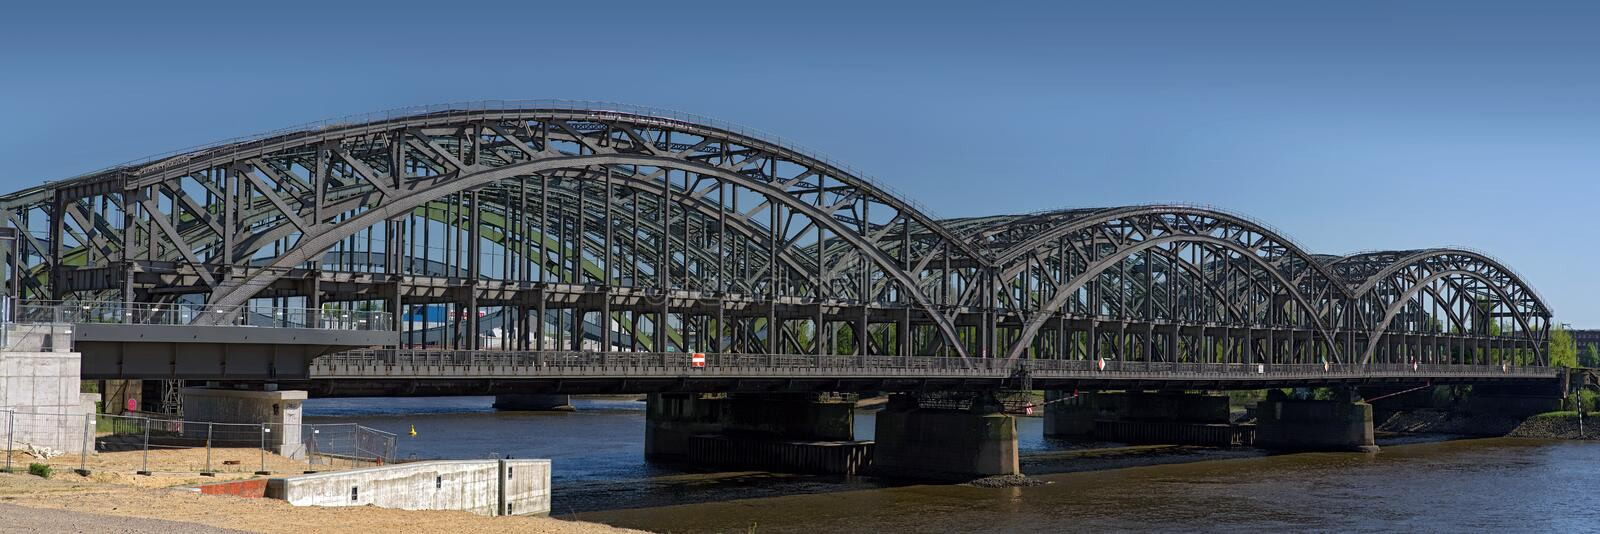 Hamburg Elbe bridges royalty free stock images